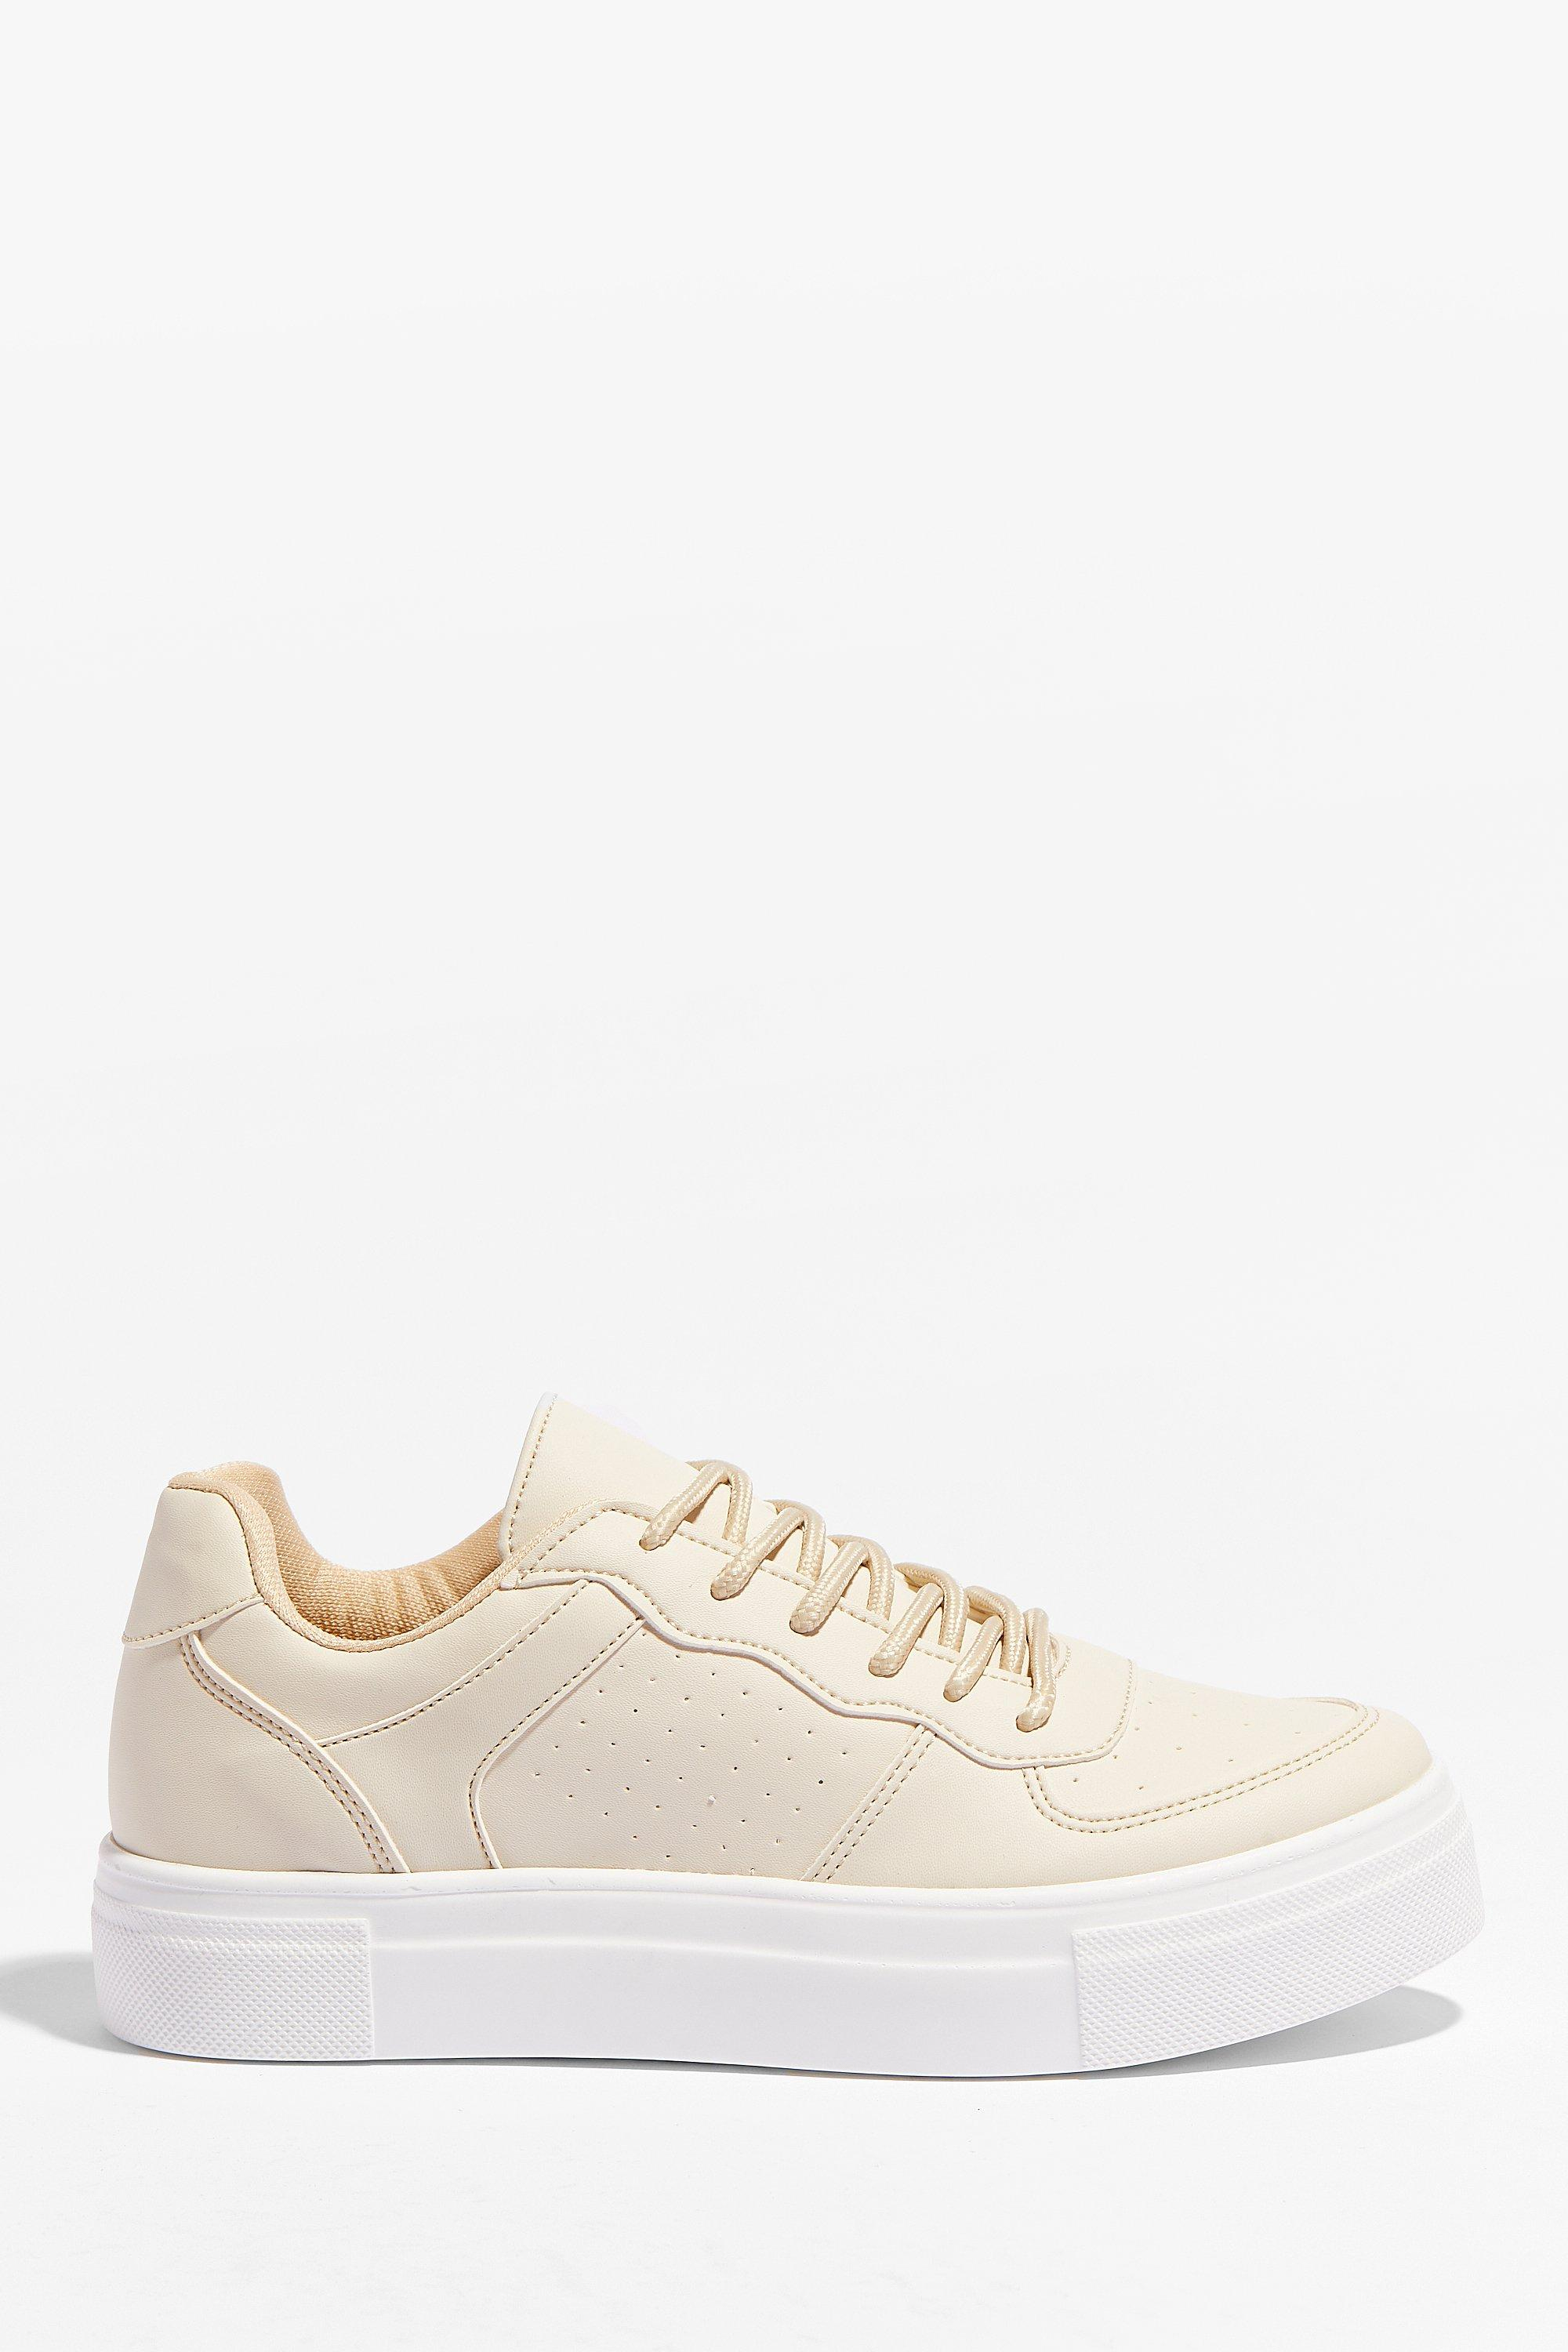 Image of Womens Faux leather flatform lace up sneakers - Nude